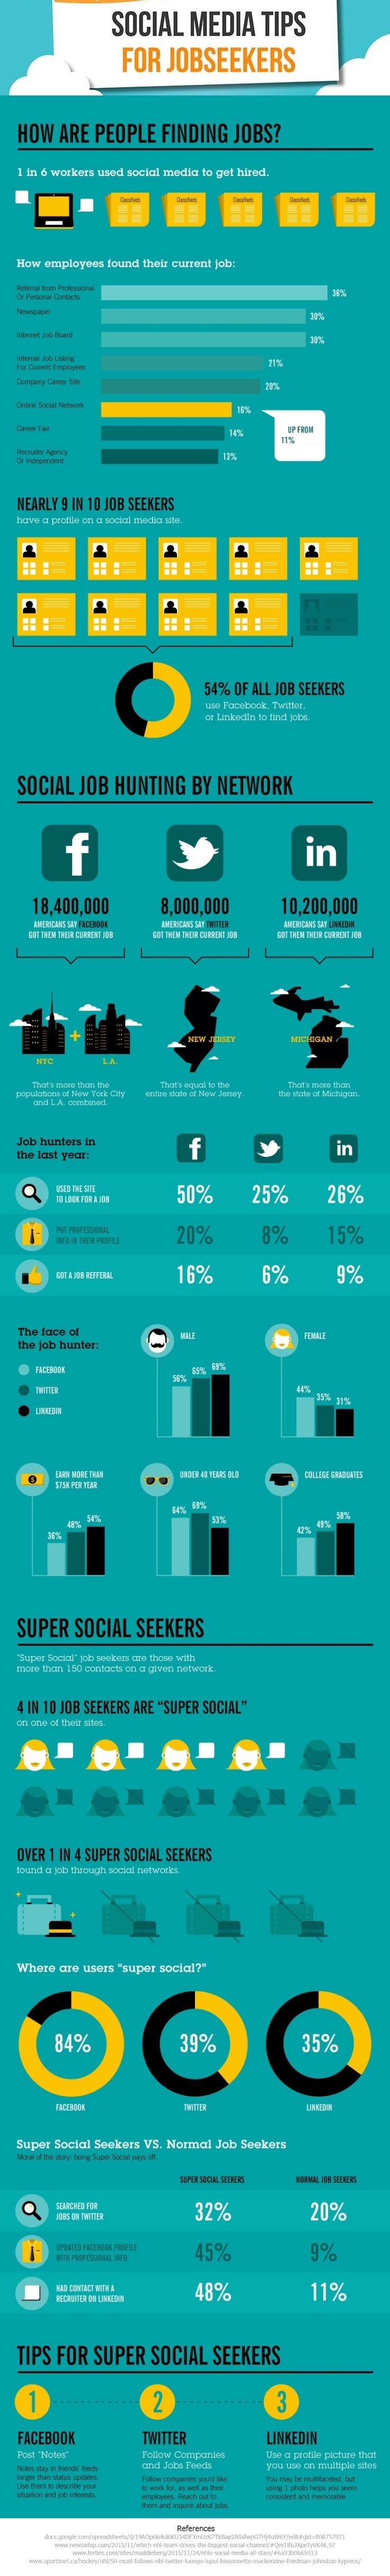 infographic social media tips for job seekers designtaxi com click to view full infographic